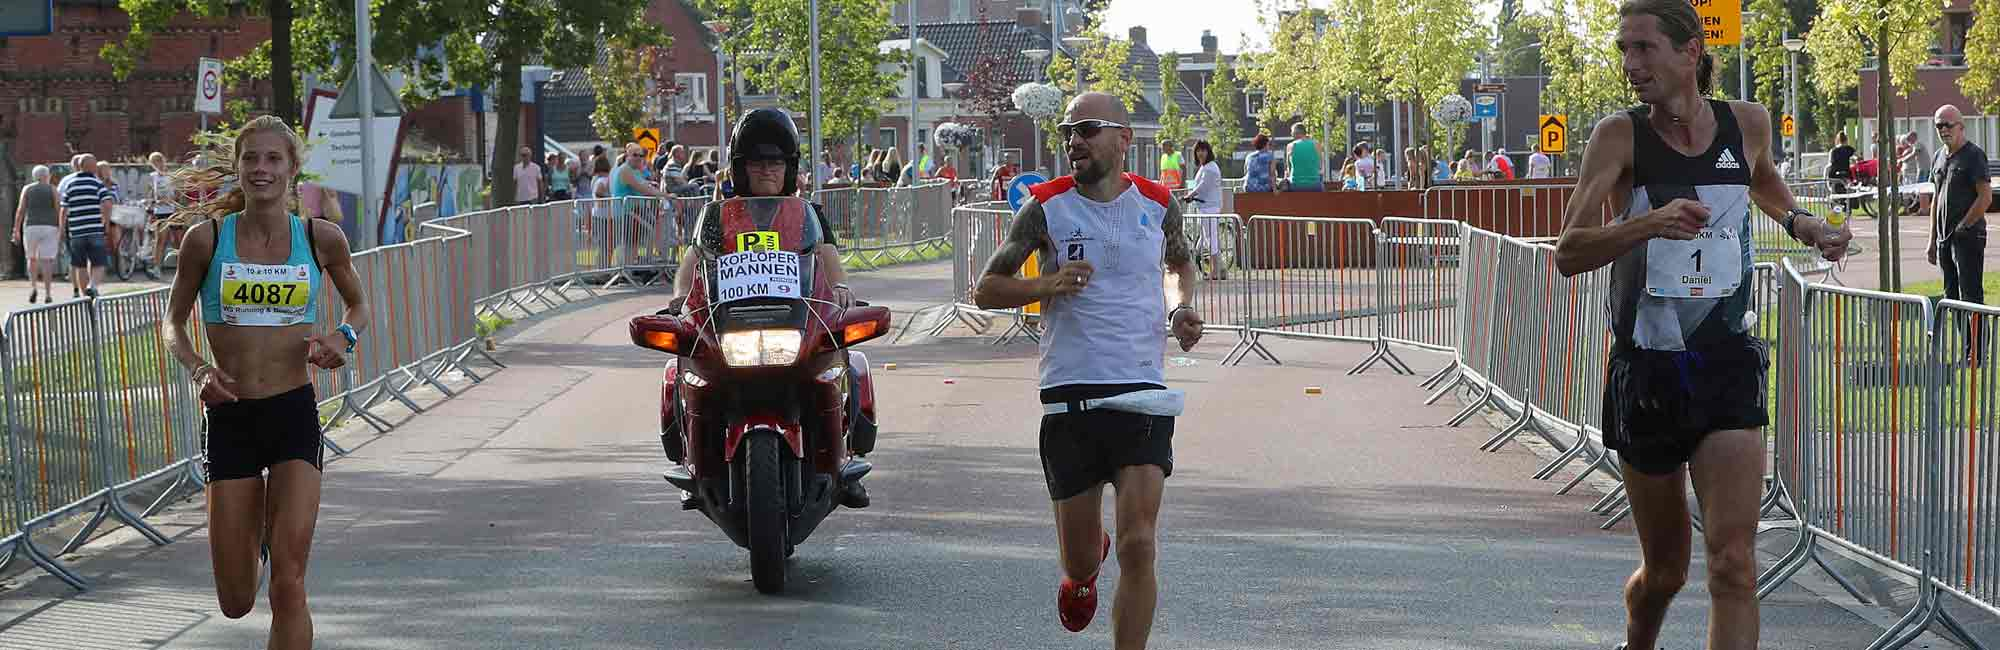 13 en14 september 2019 - RUN Winschoten